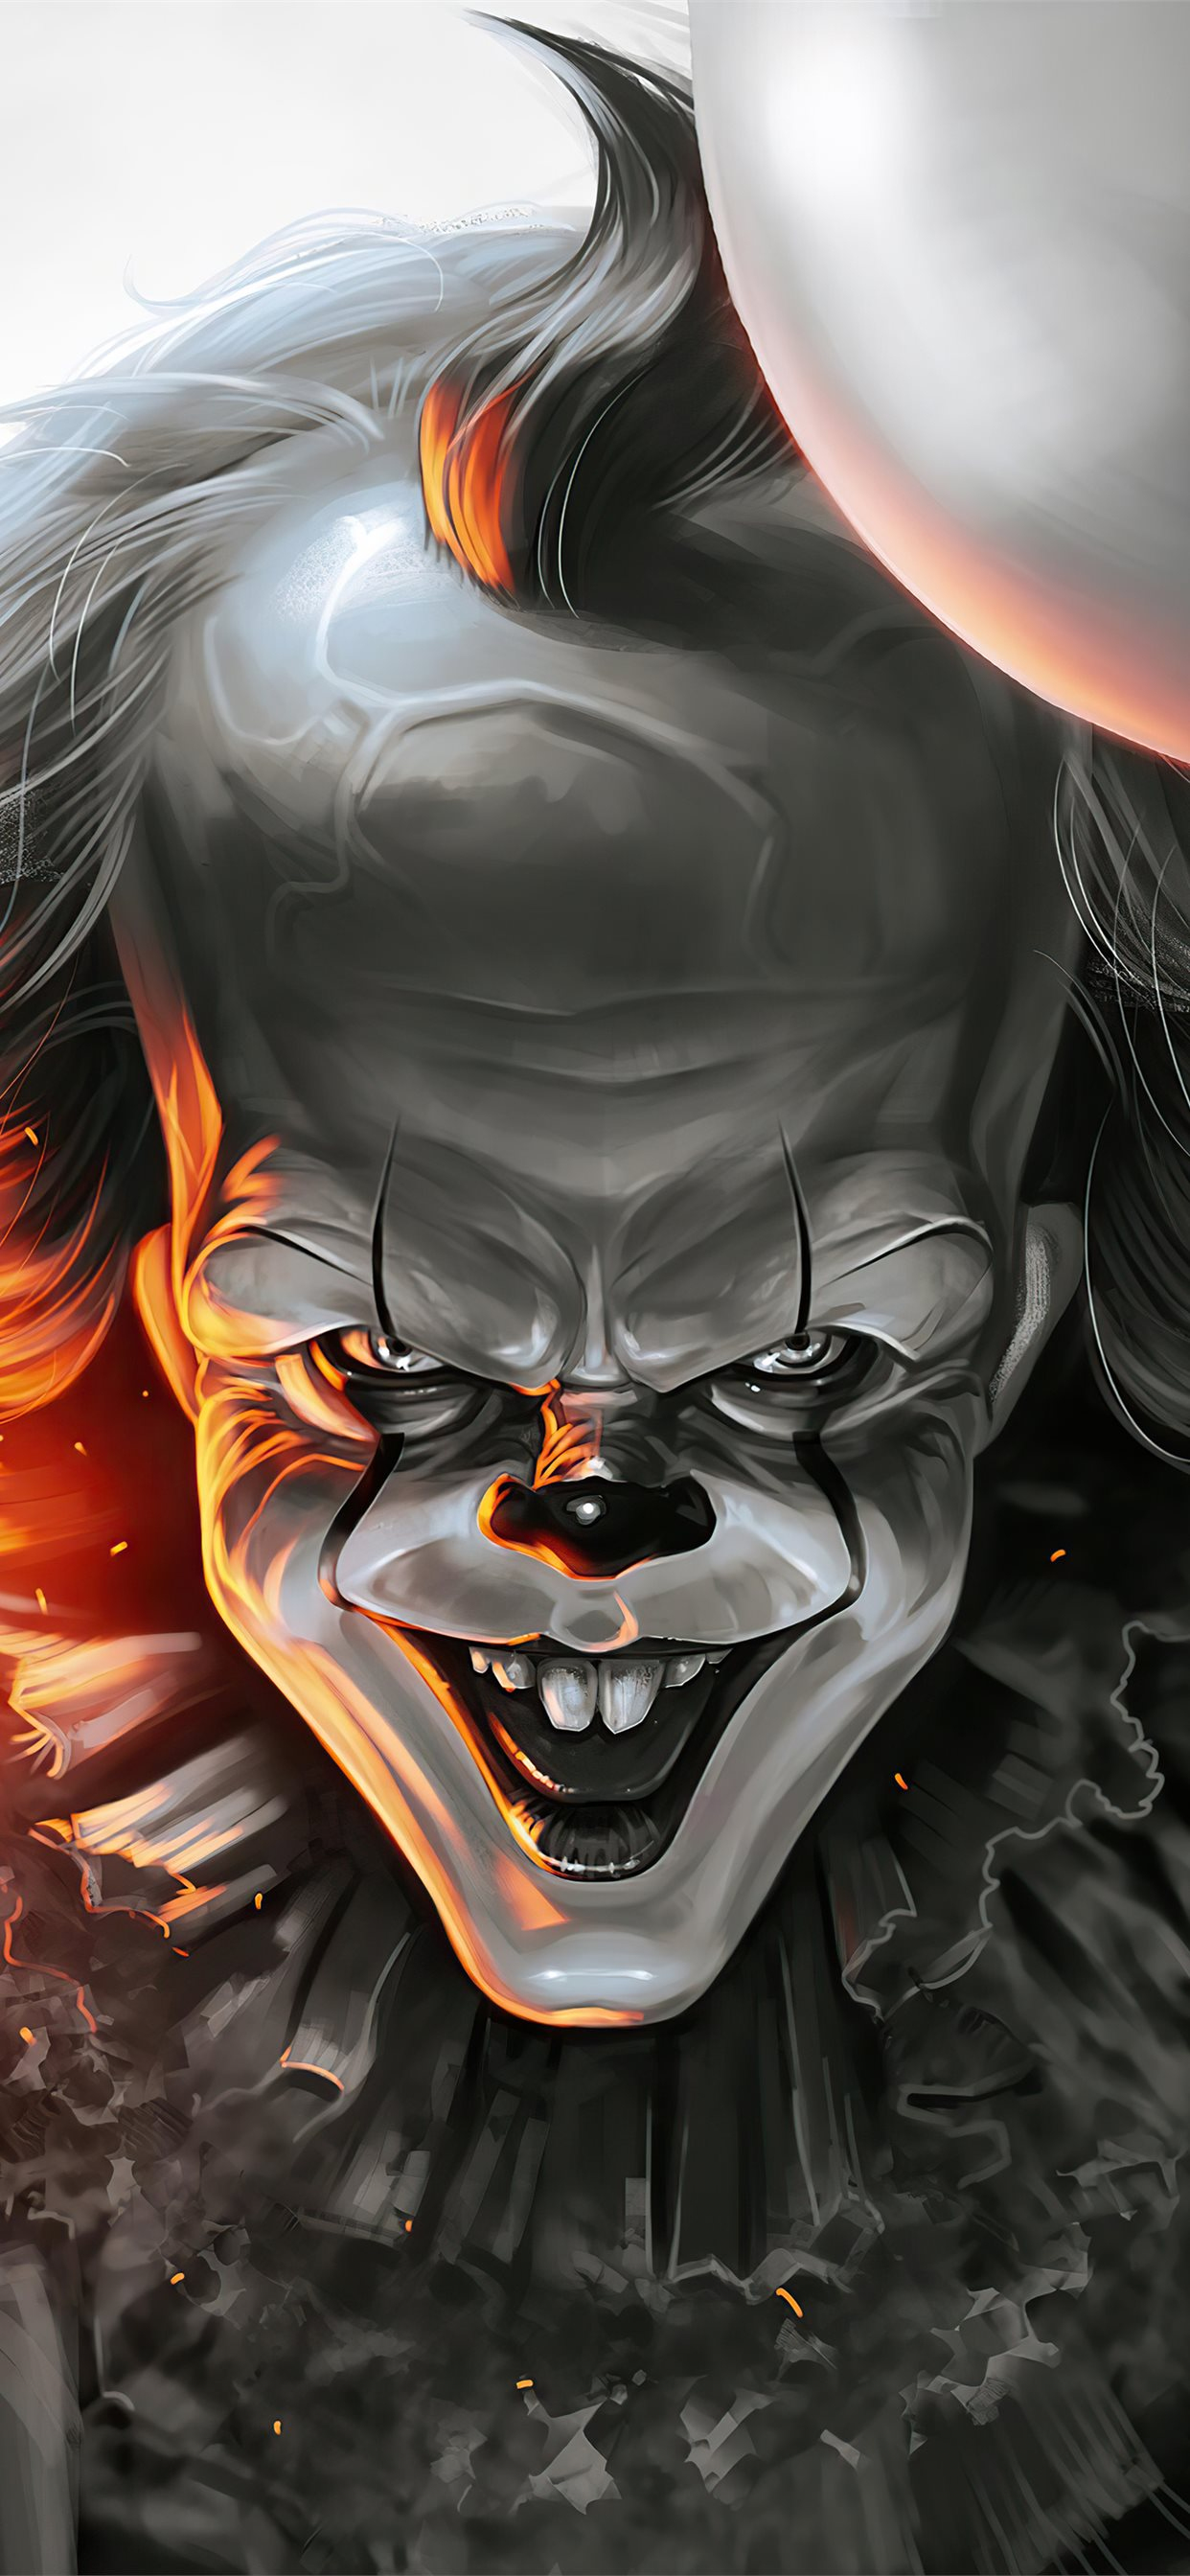 pennywise zombie 4k iphone 11 pro max wallpaper